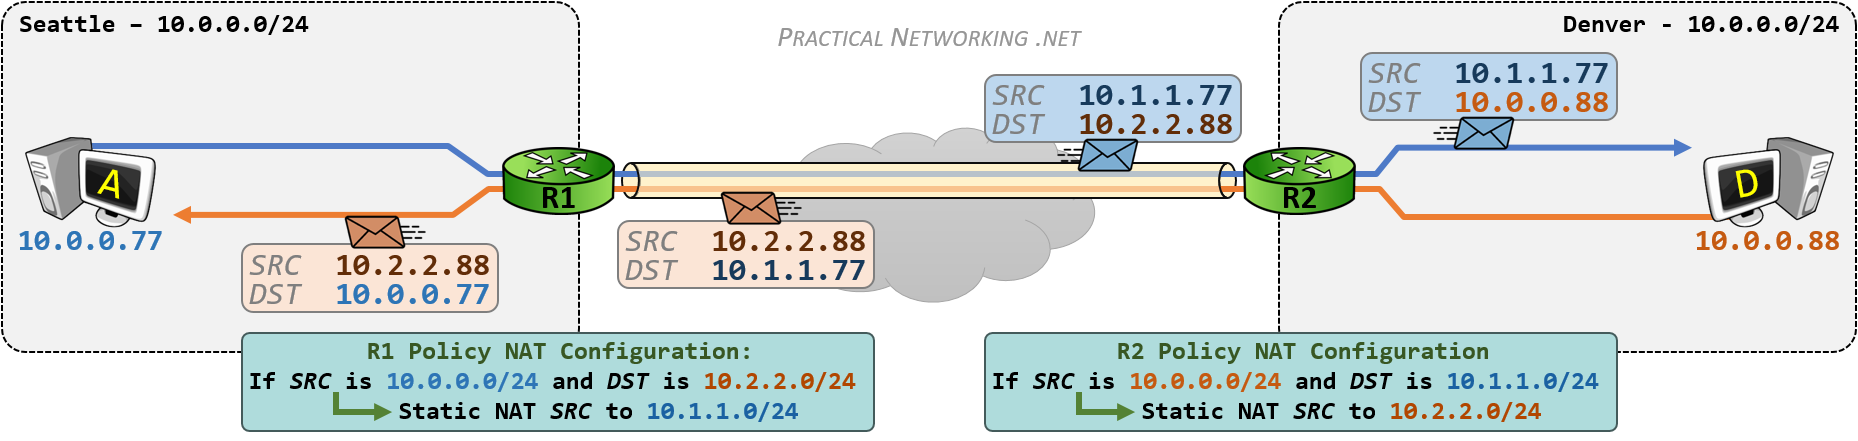 VPN Overlapping Networks - Policy NAT - Inbound Un-Translation